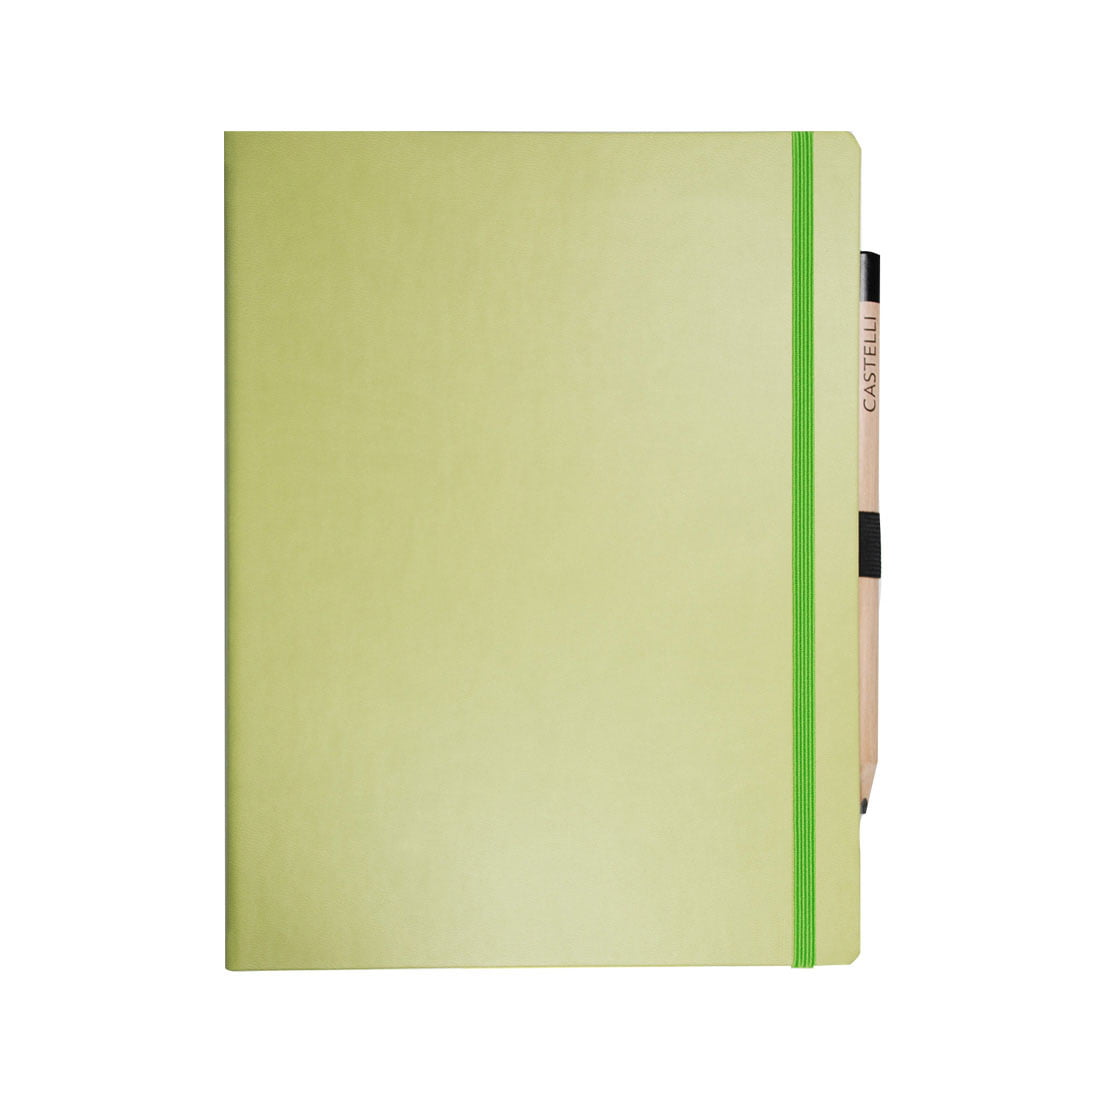 Large note book in bright green ivory ruled pages, rounded corners and pen loop with pencil.